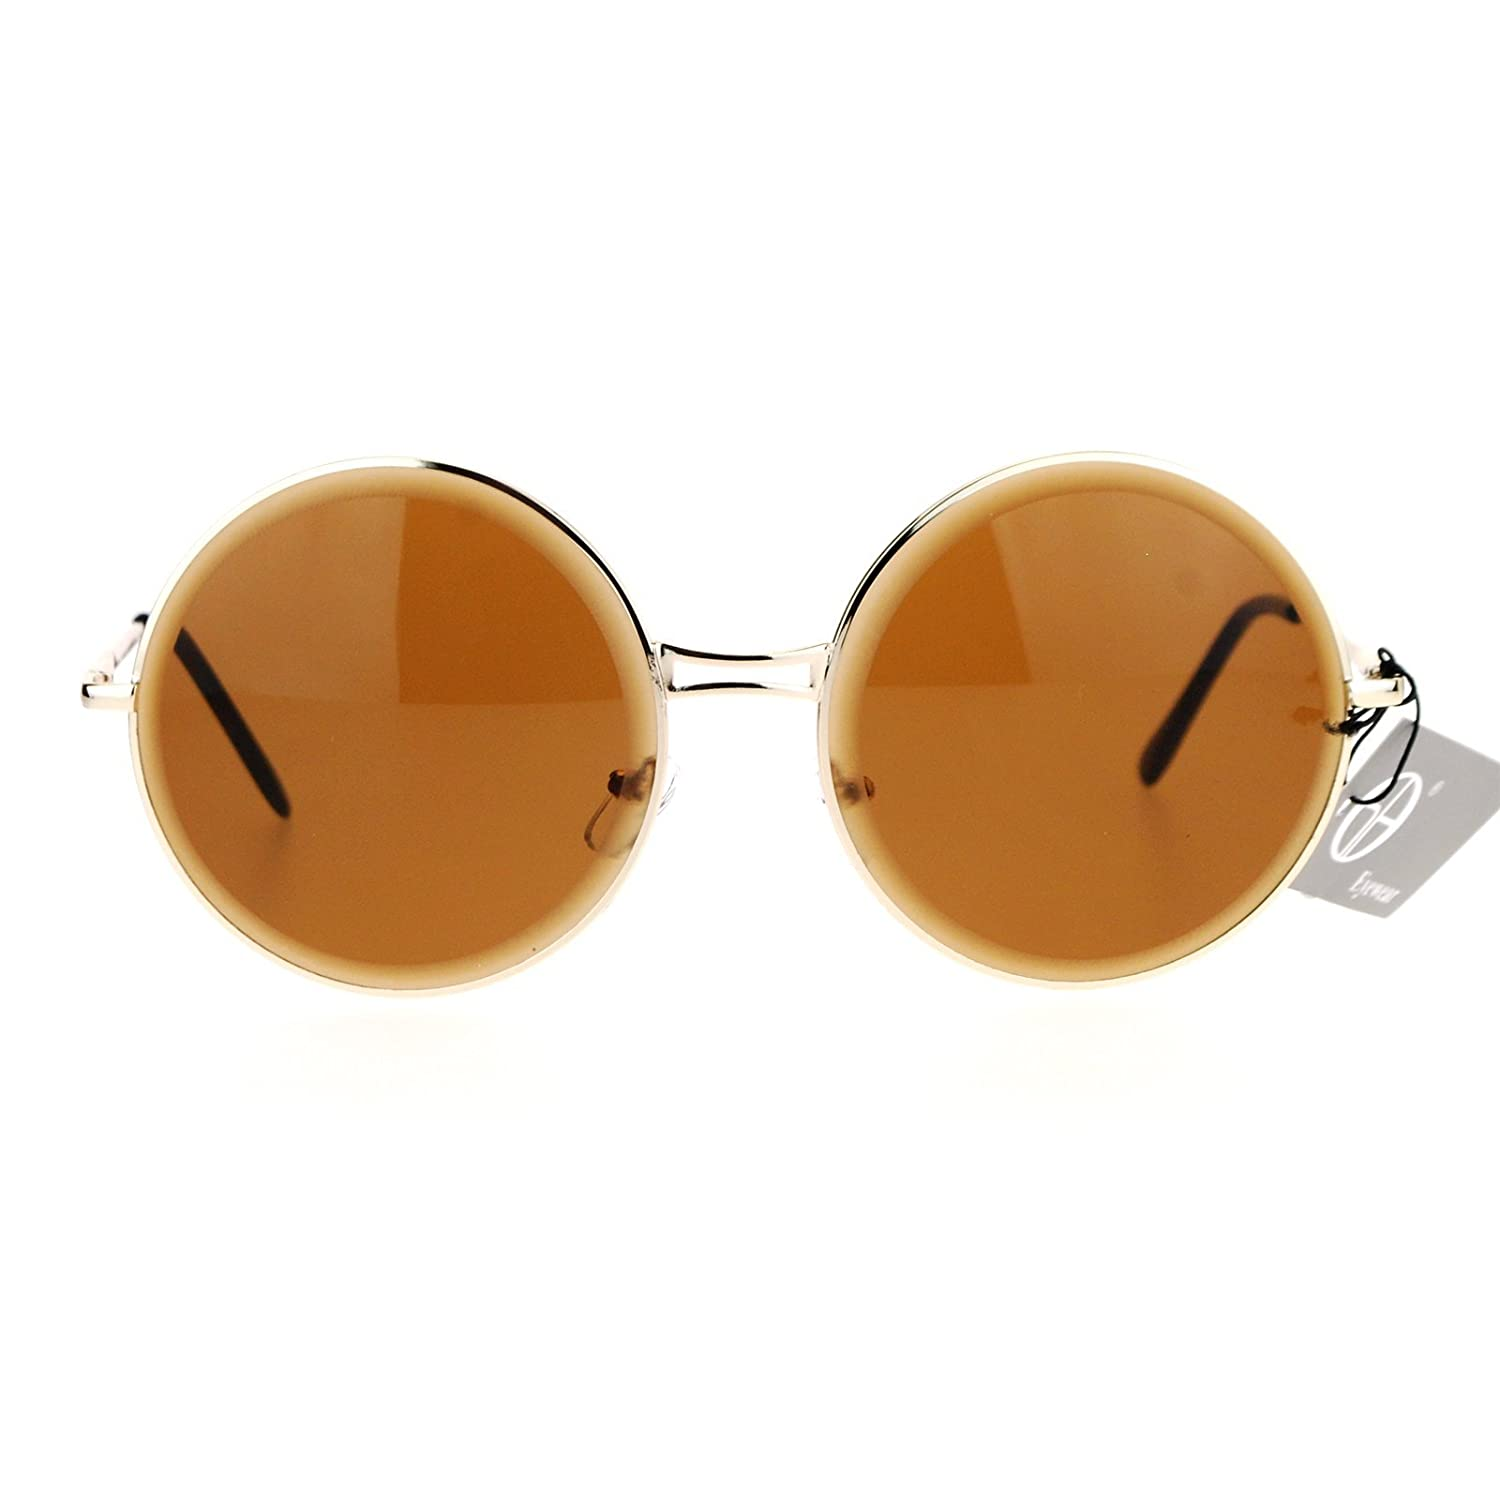 ec8d75afd Amazon.com: SA106 Beveled Edge Mirrored Lens Round Circle Lens Sunglasses  Gold Brown: Clothing